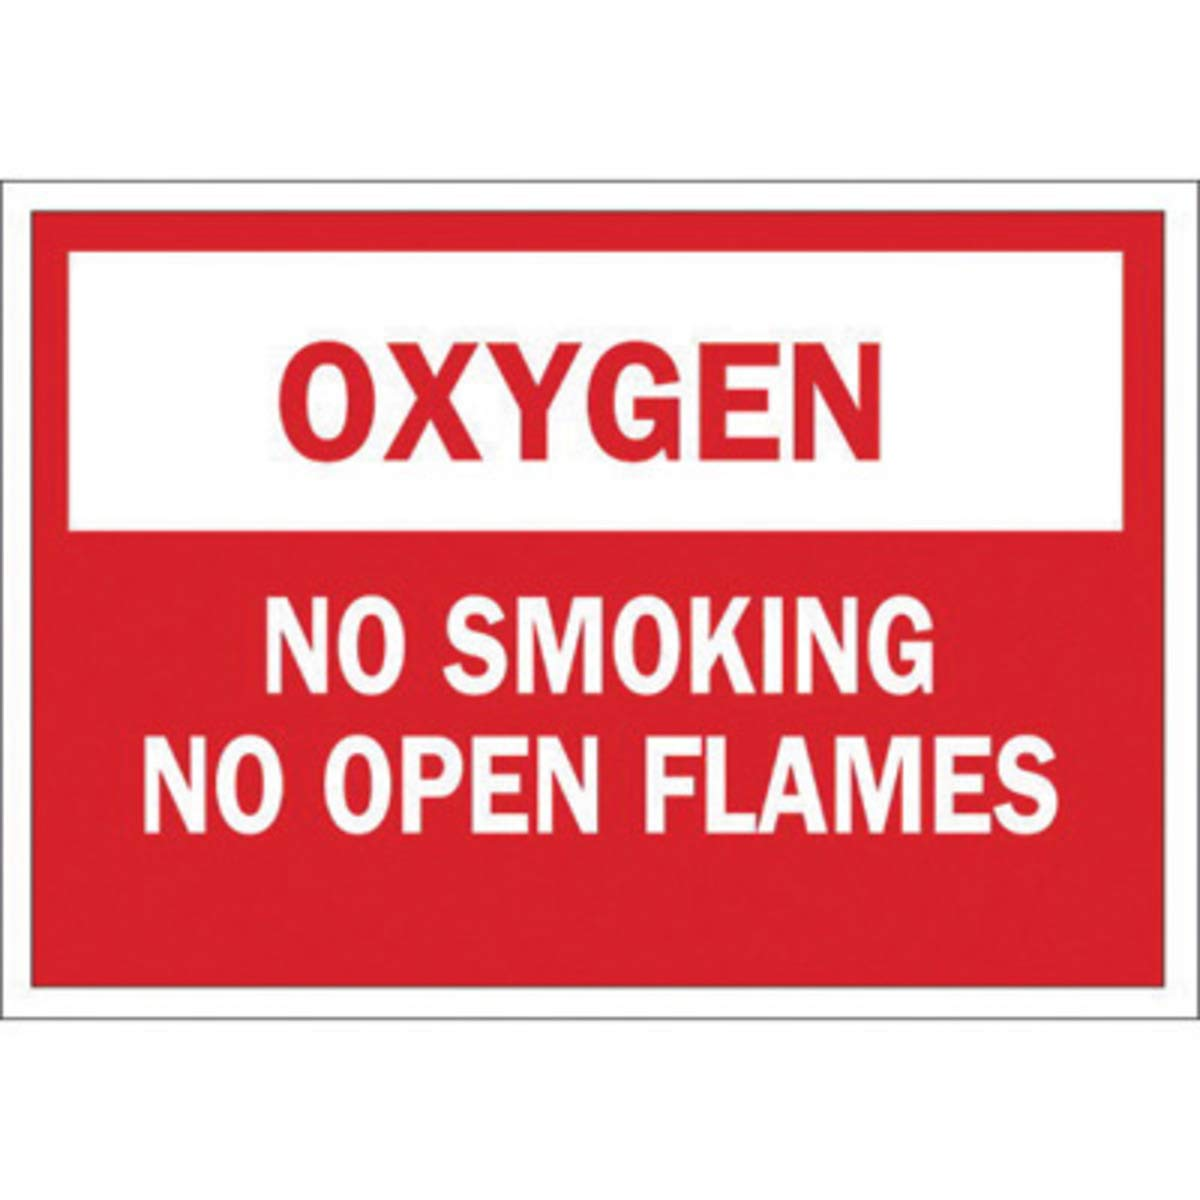 Brady 10'' X 14'' X 1/10'' Red On White .0984'' B-120 Fiberglass Chemicals And Hazardous Materials Sign''OXYGEN NO SMOKING NO OPEN FLAMES''